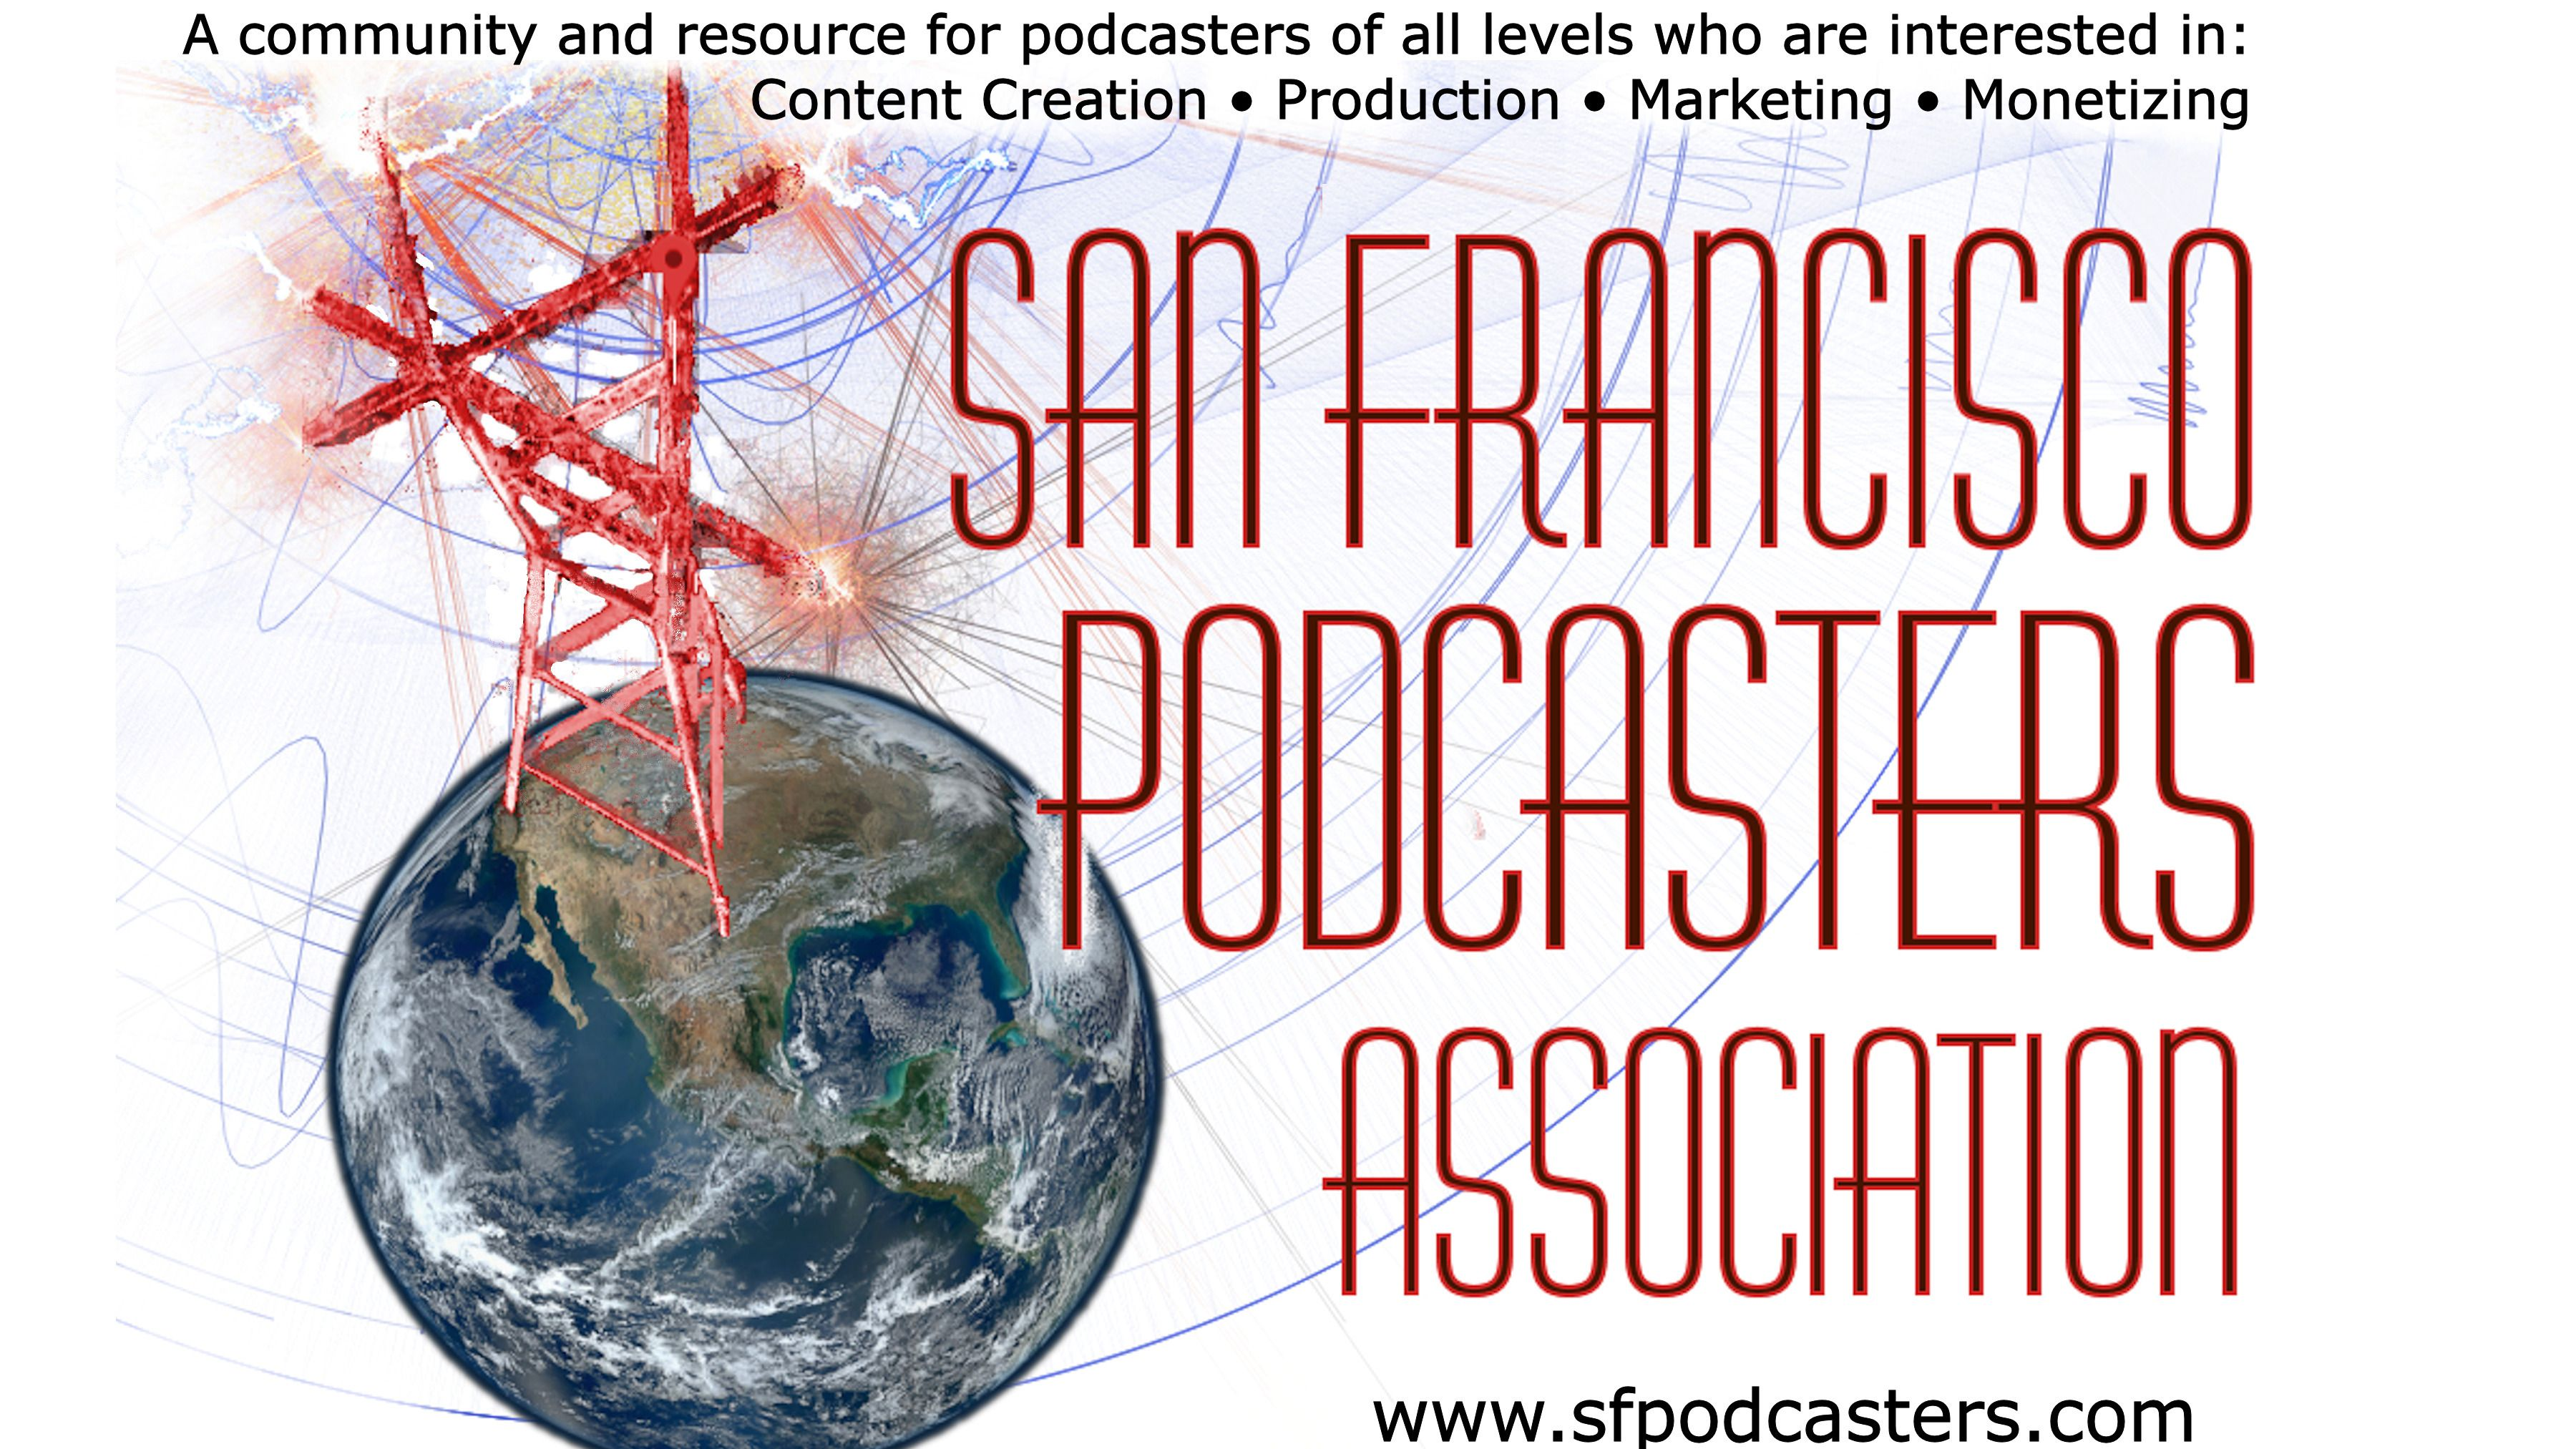 San Francisco Podcasters Association